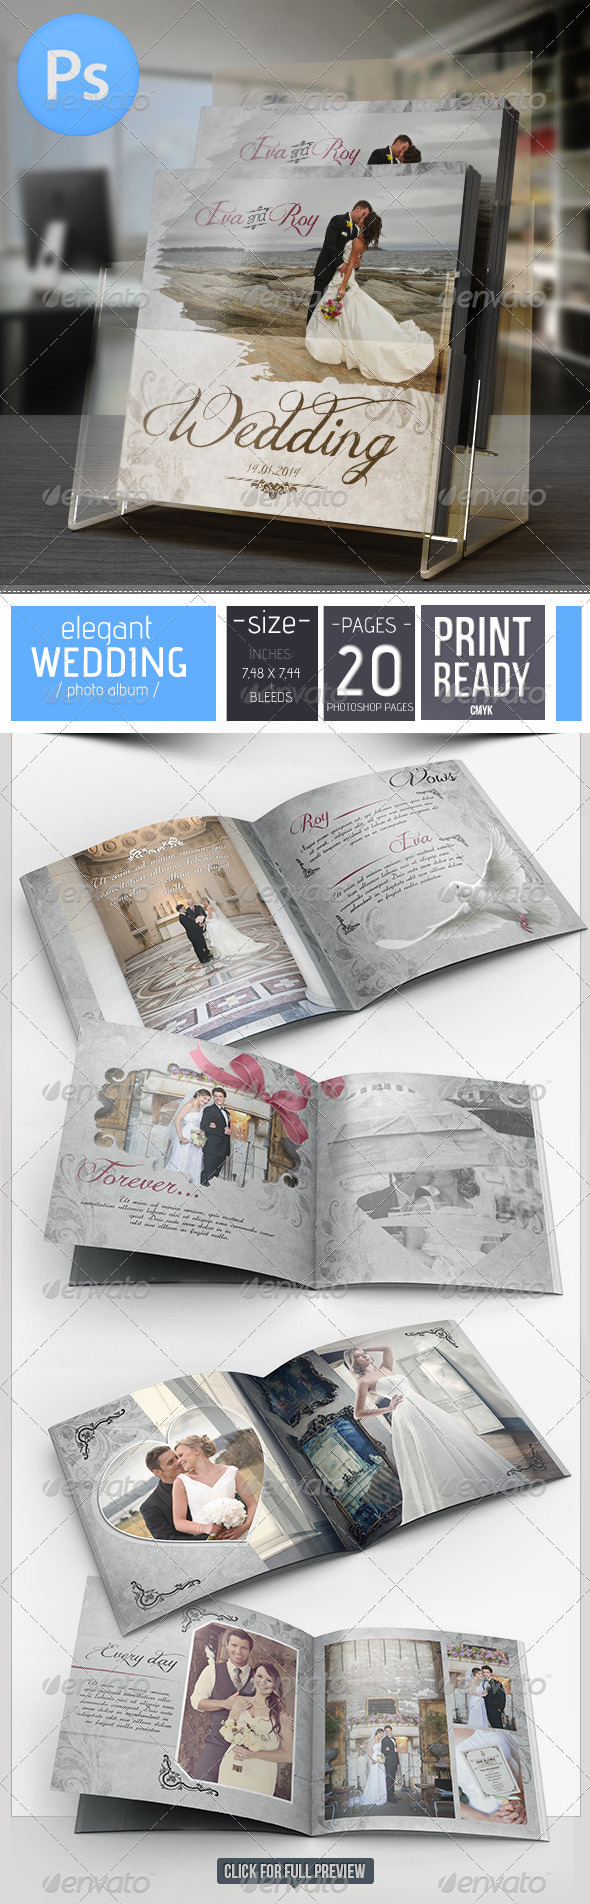 GraphicRiver 20 Pages Elegant Wedding Photo Album For Photoshop 6652288